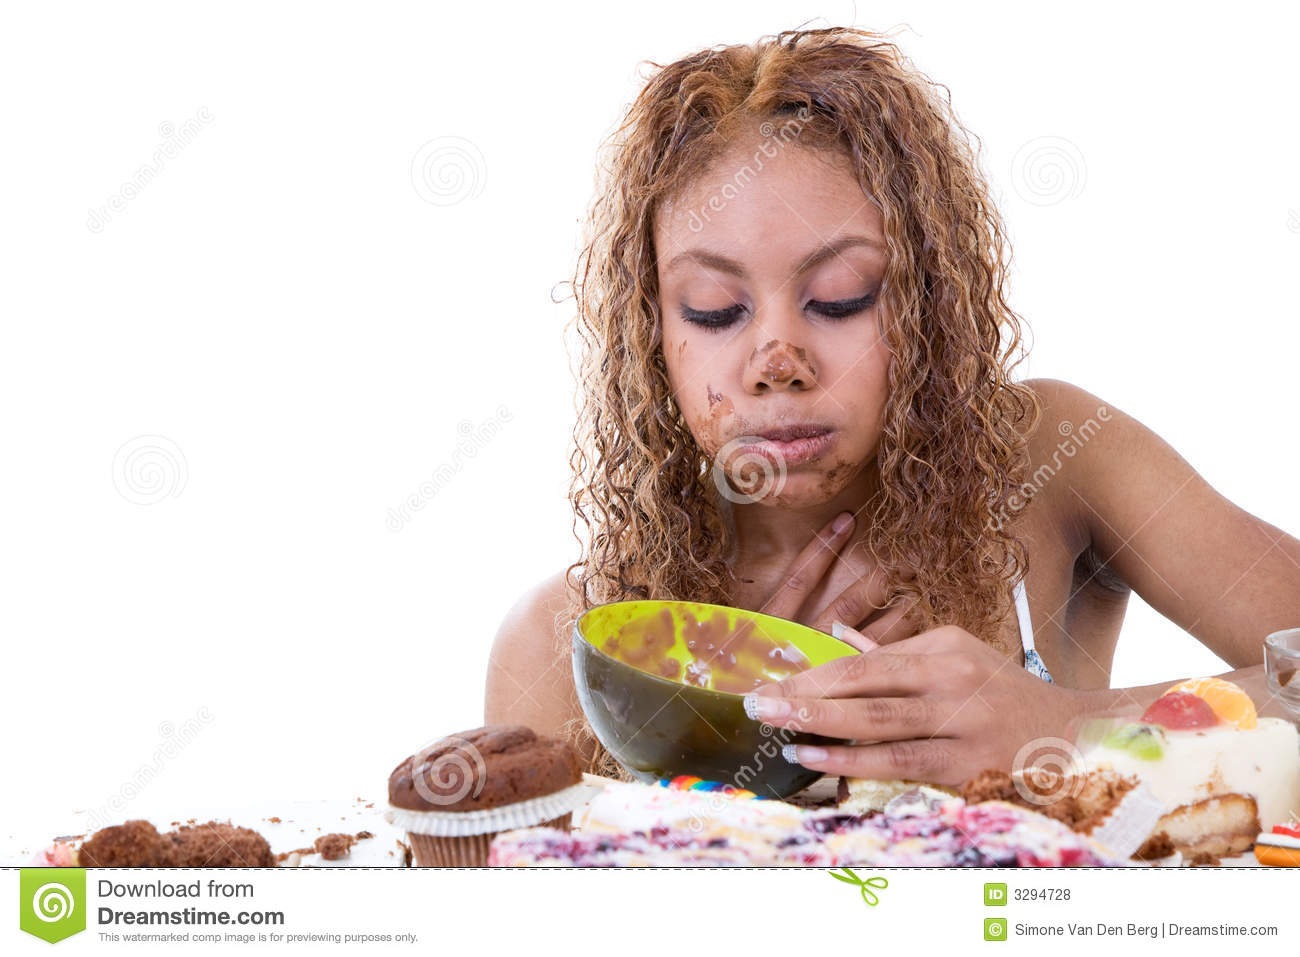 How To Throw Up Your Food After Eating